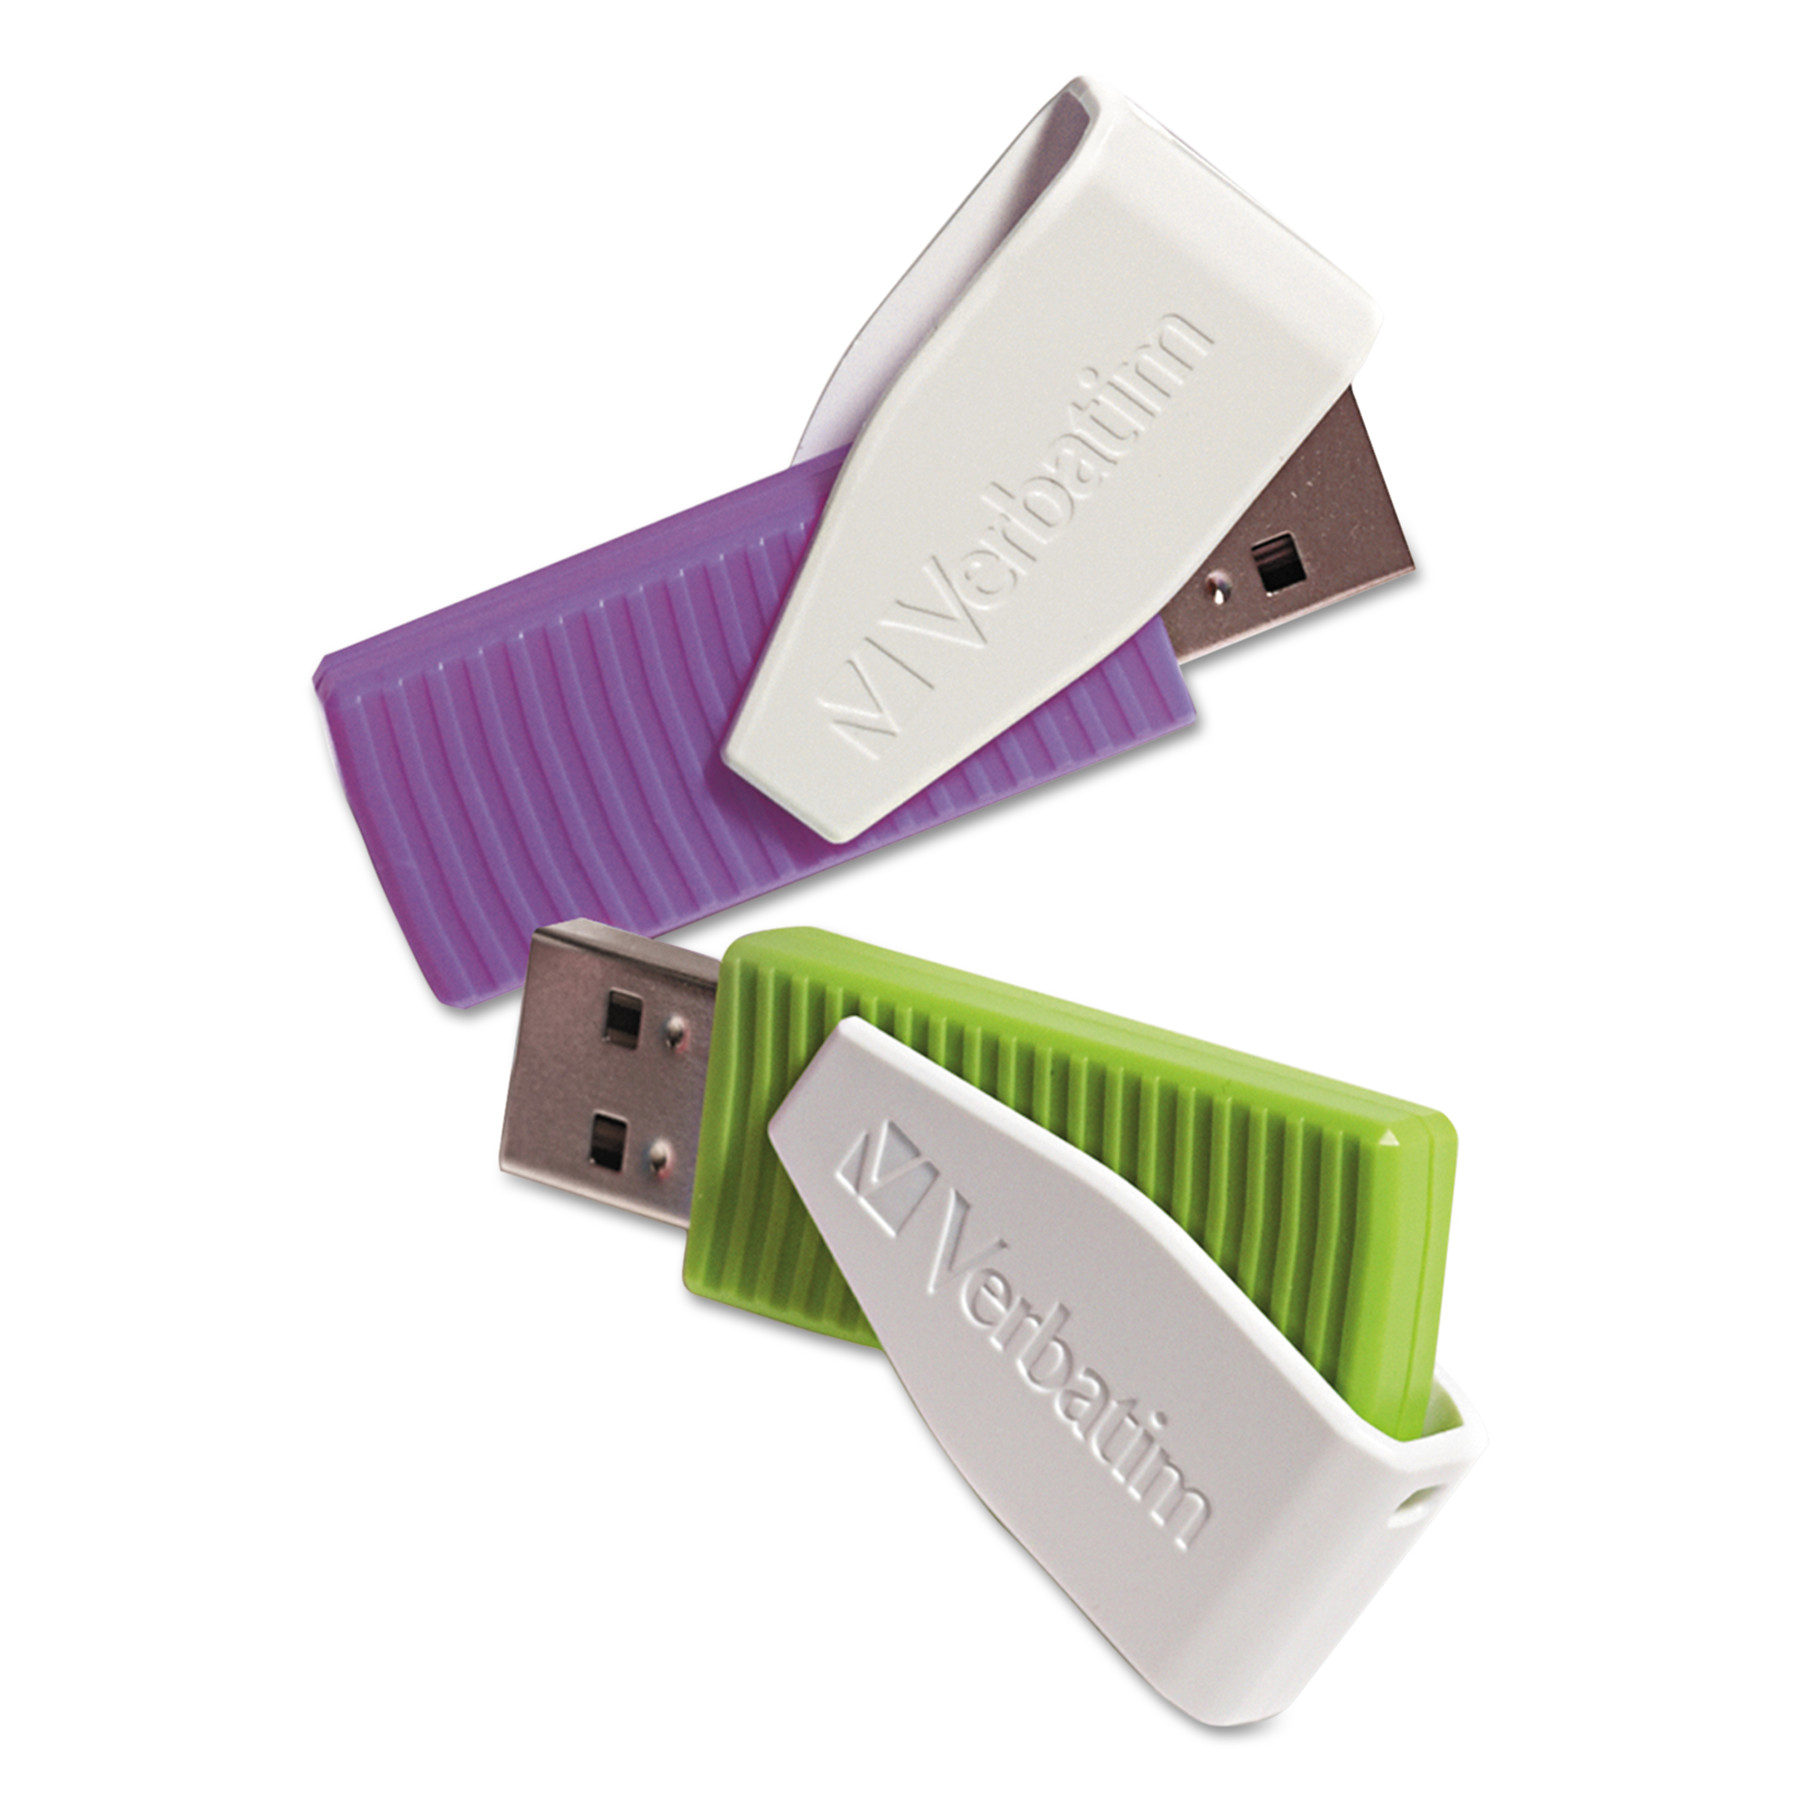 Verbatim Store 'n' Go Swivel USB 2.0 Flash Drive, 16GB, Green/Violet, 2/Pack -VER98425